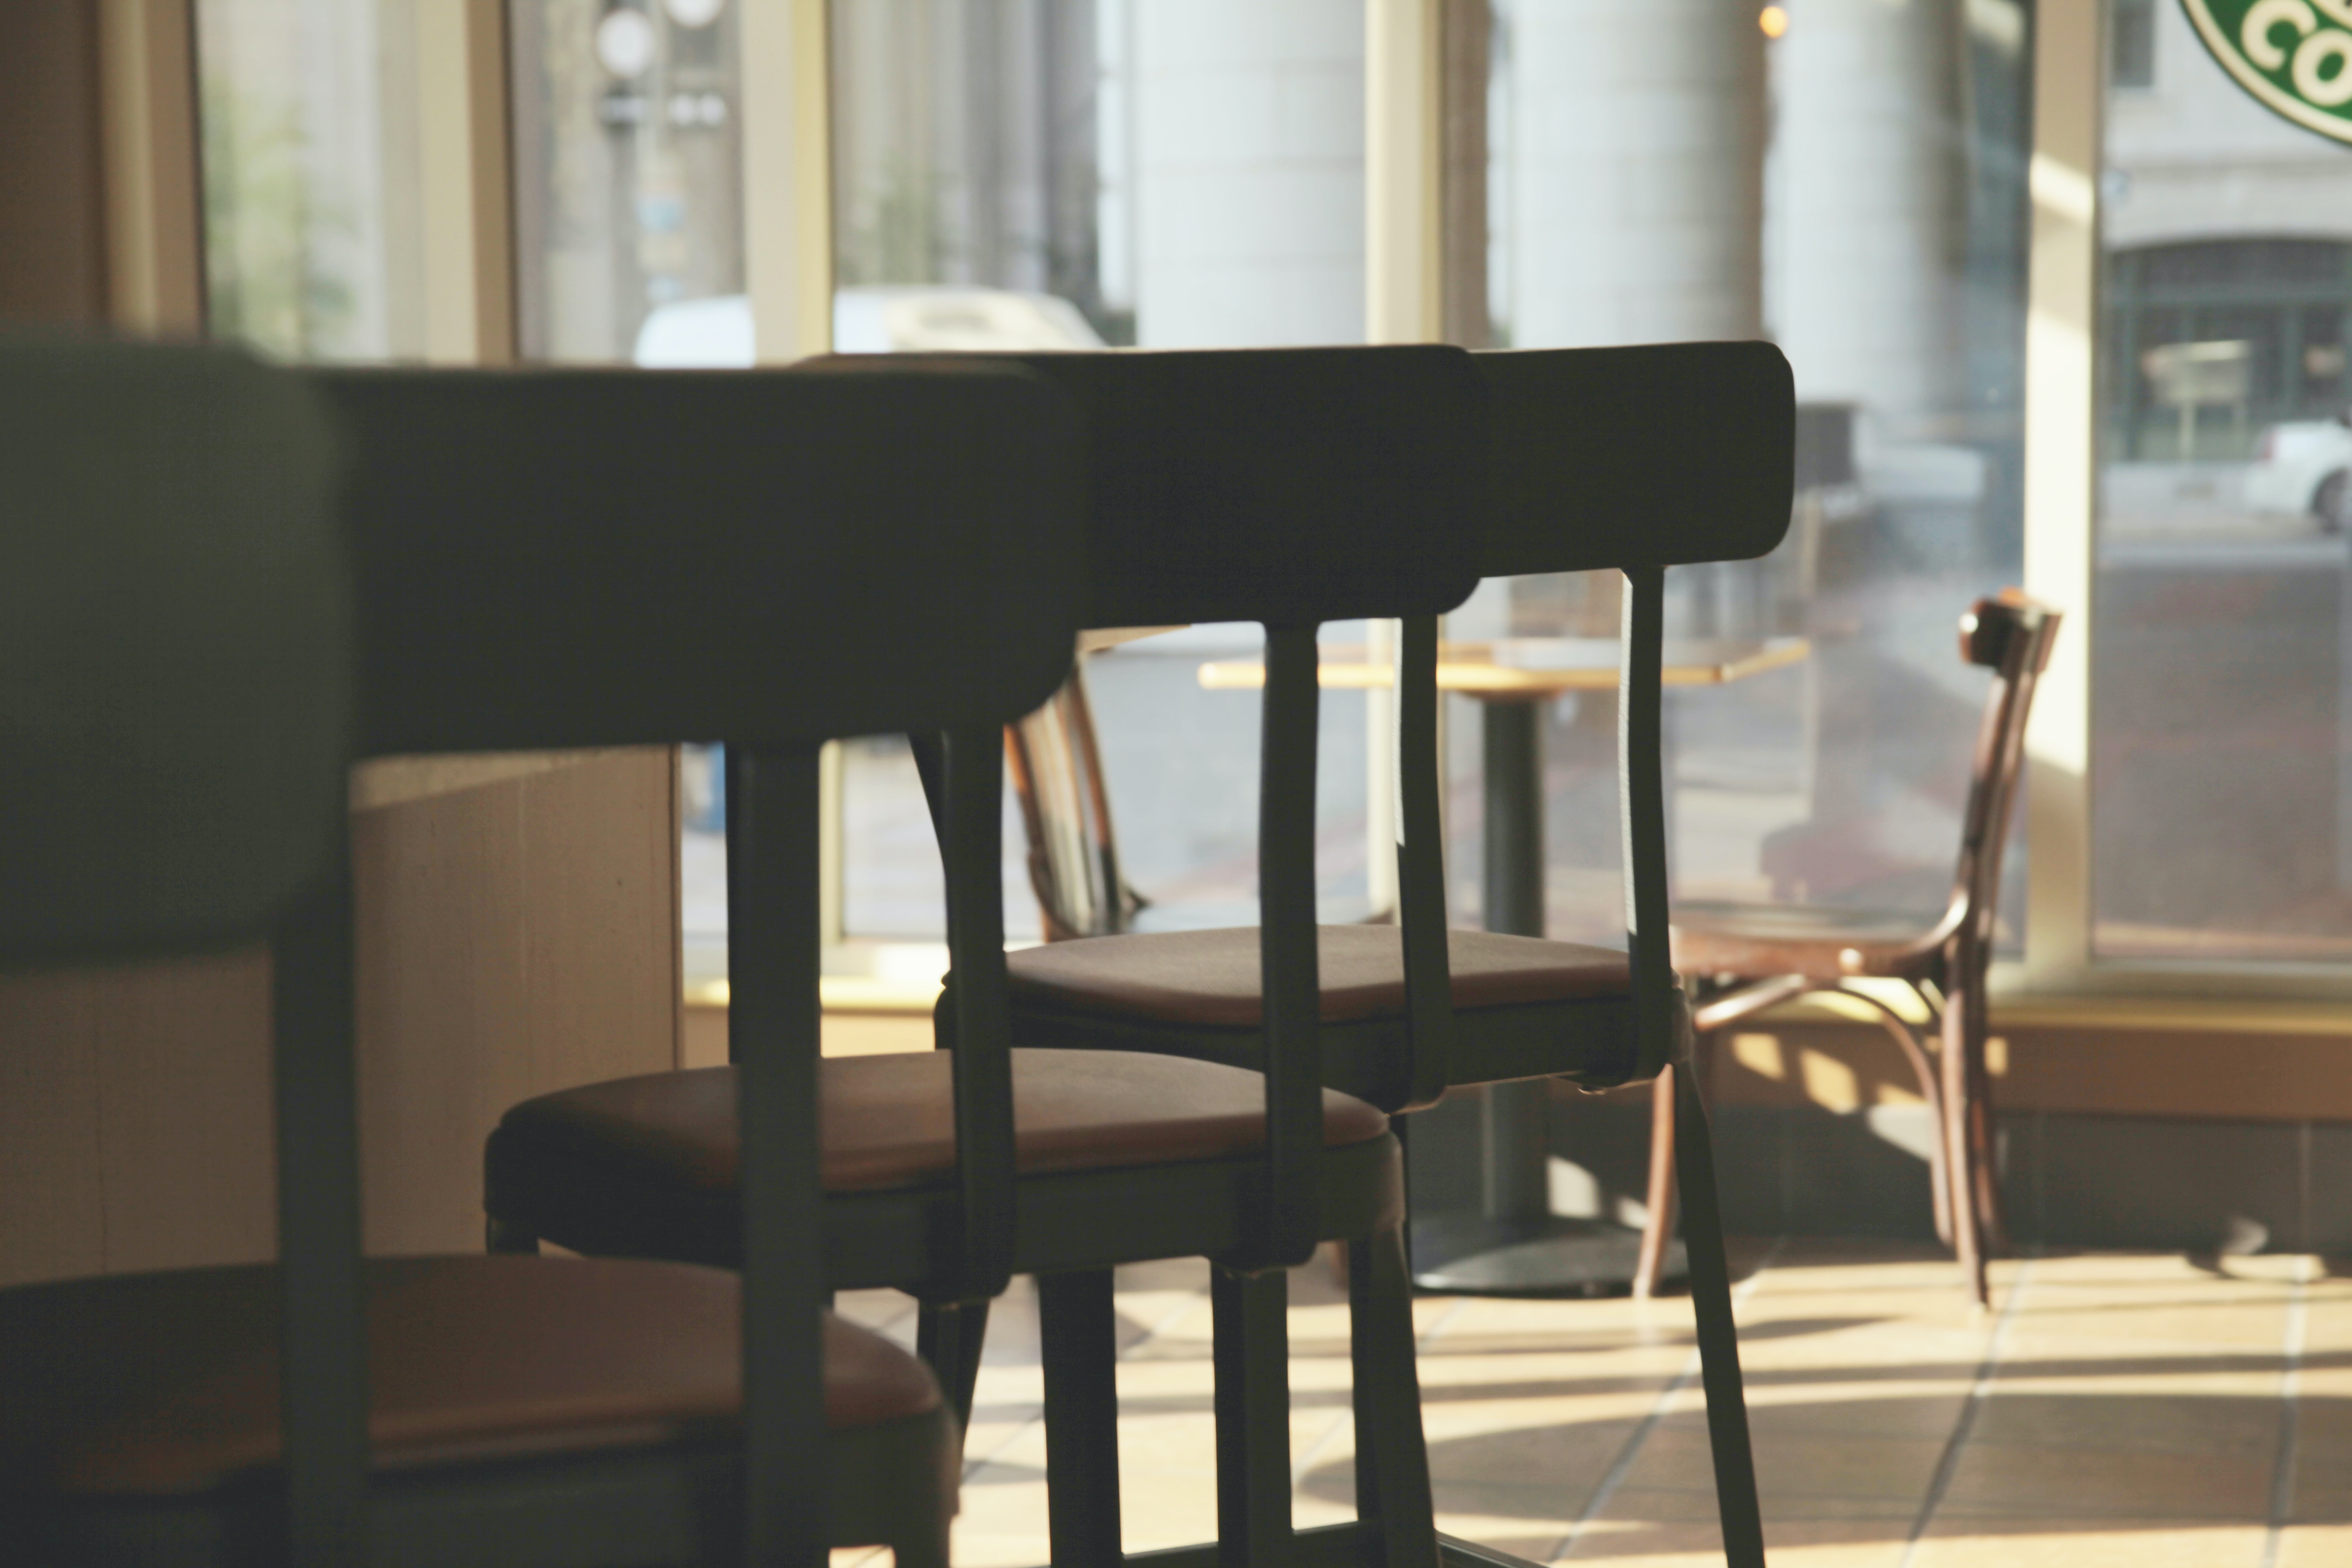 silhouette photography of gray bar stools placed at side of bar counter in a dim-lit store